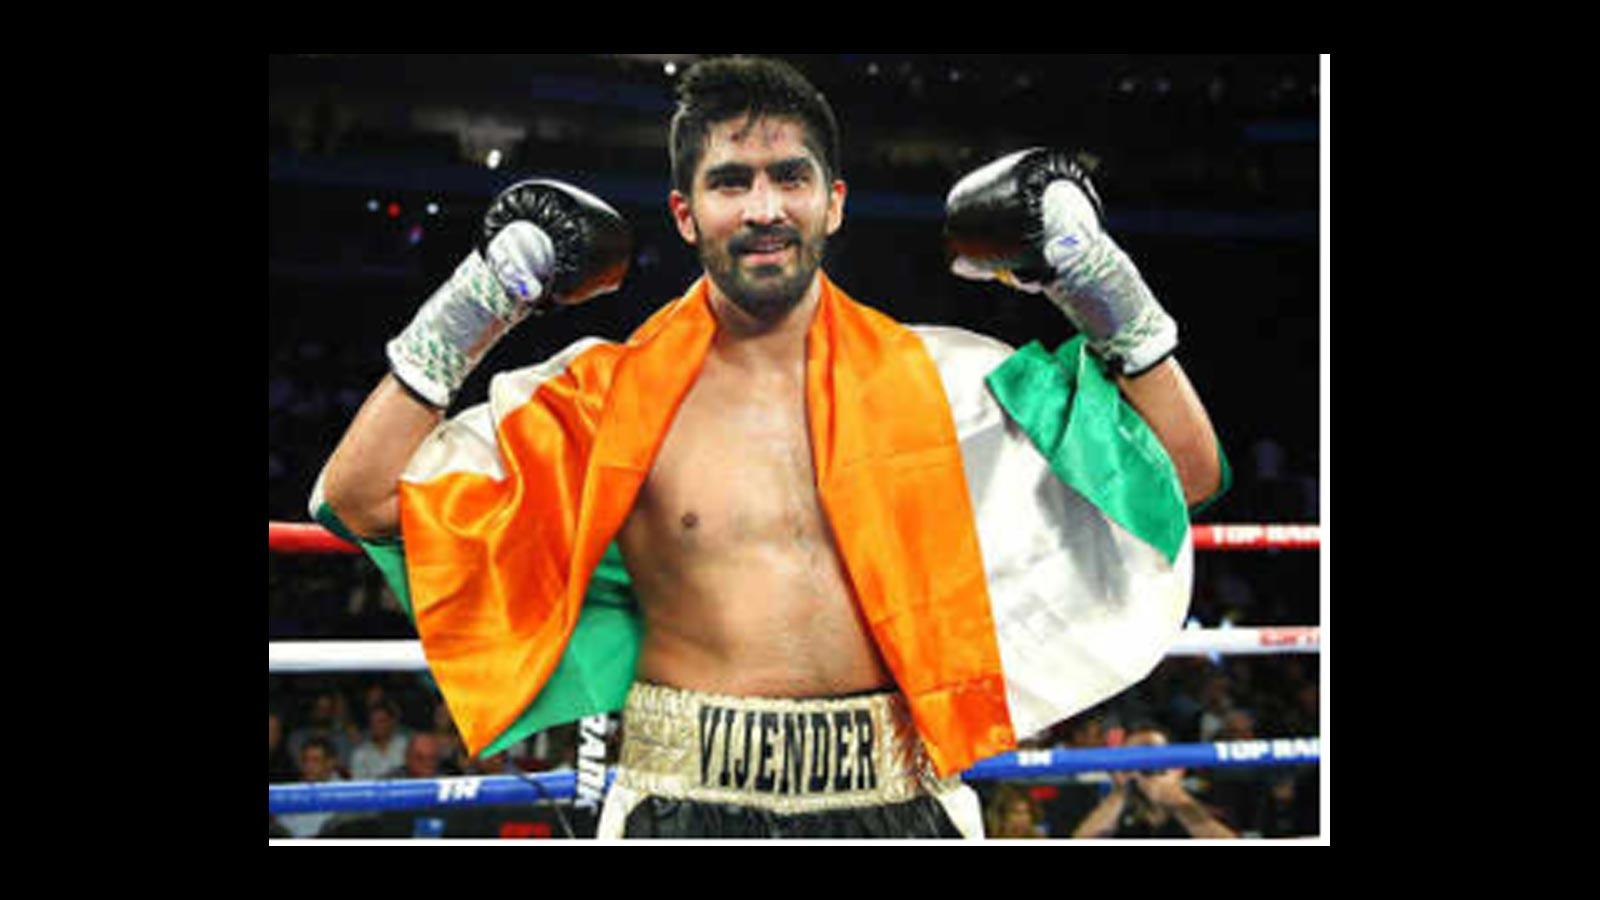 boxer-vijender-singh-wins-11th-consecutive-pro-bout